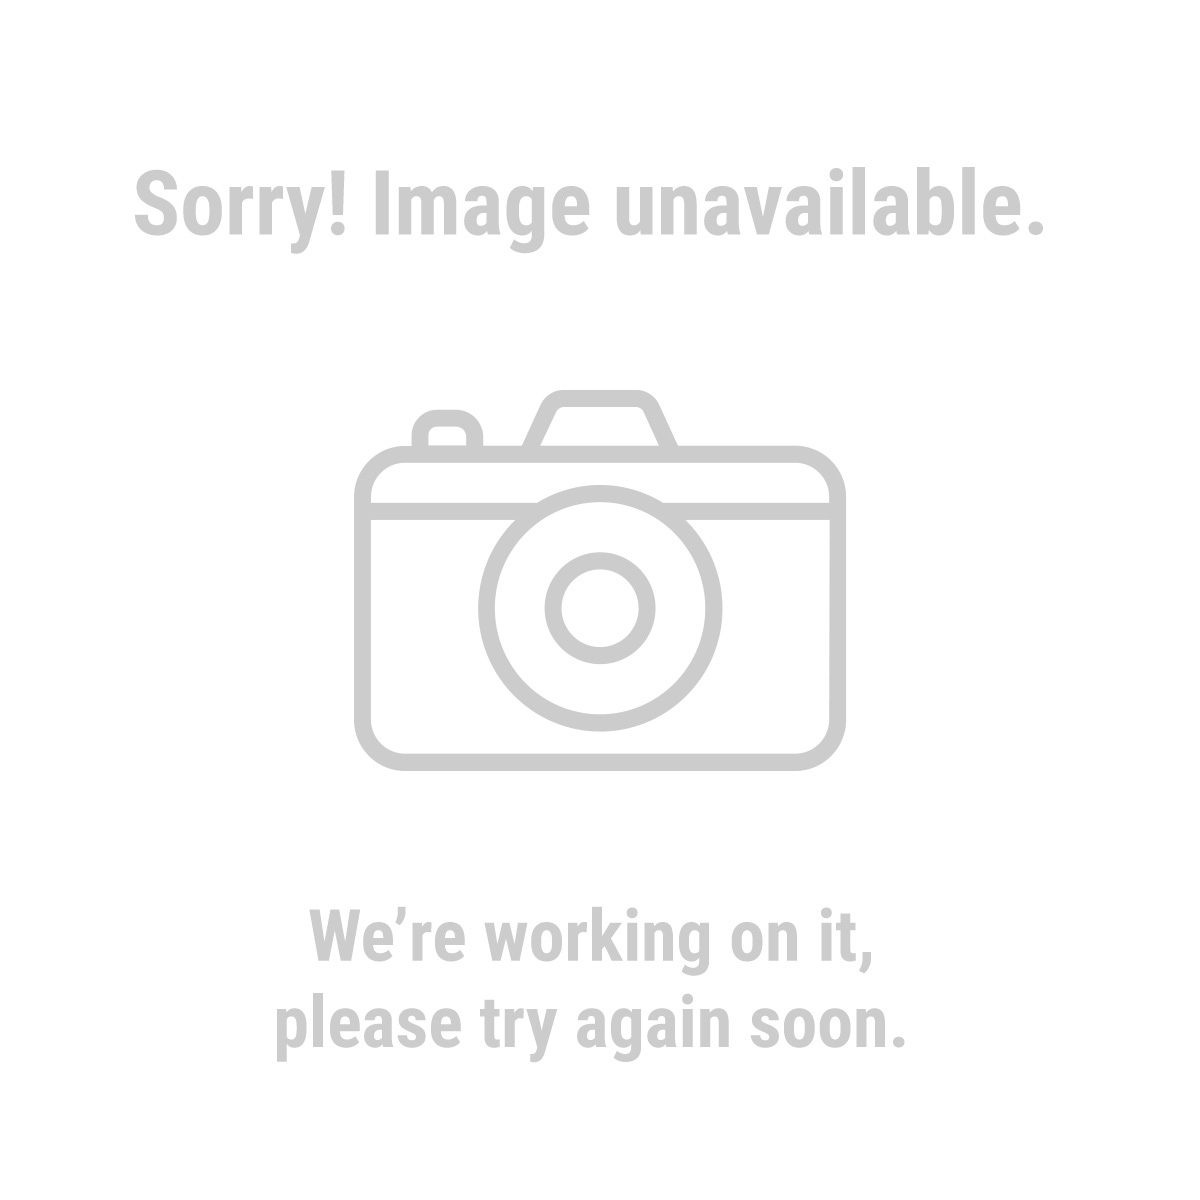 Central Pneumatic 95211 Auto-Rewind Air Hose Reel